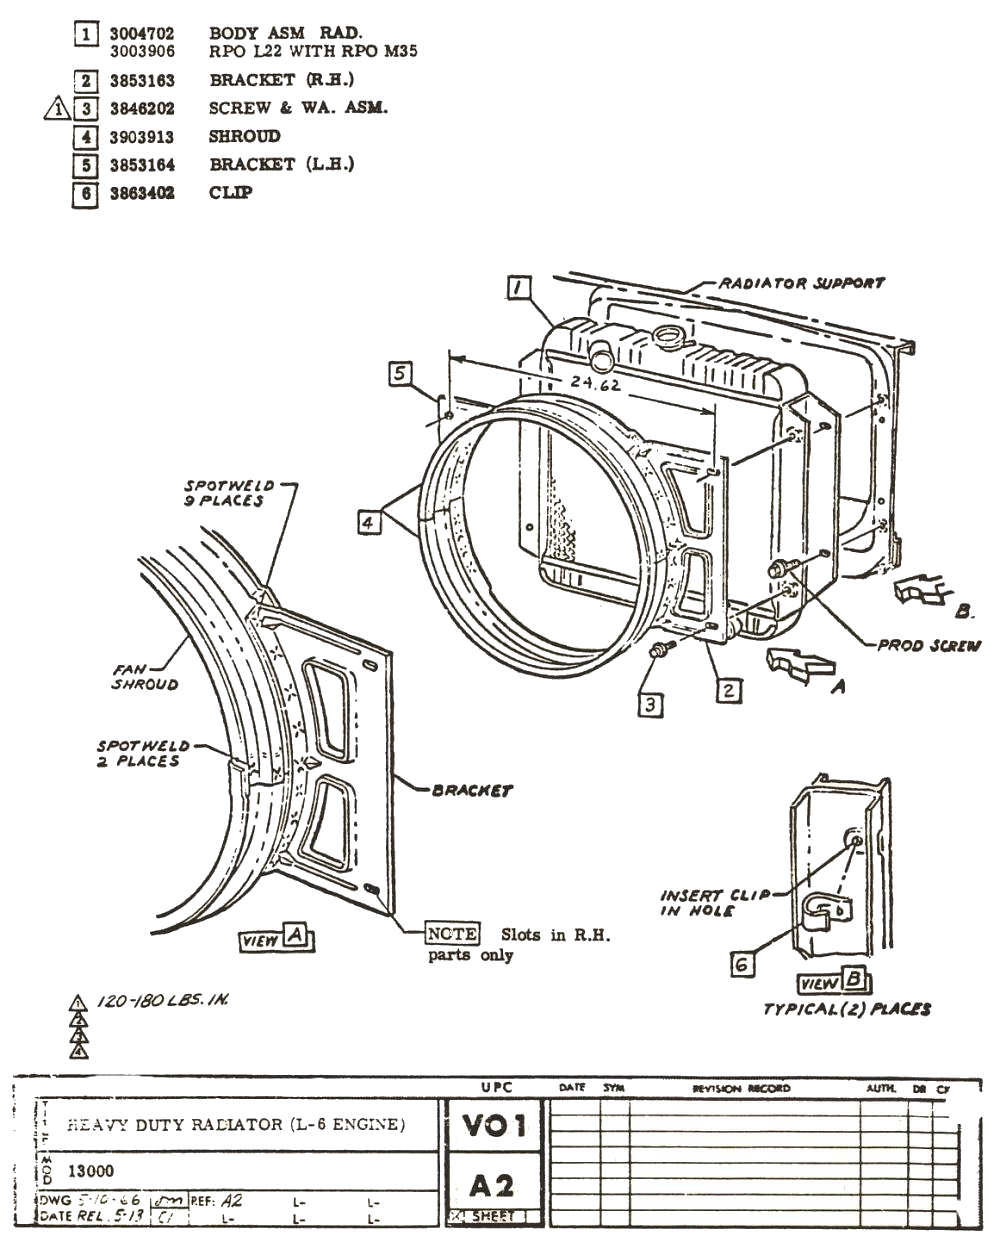 1967 Chevelle Factory Assembly Instruction Manual L6 Engine Diagram Previous Next